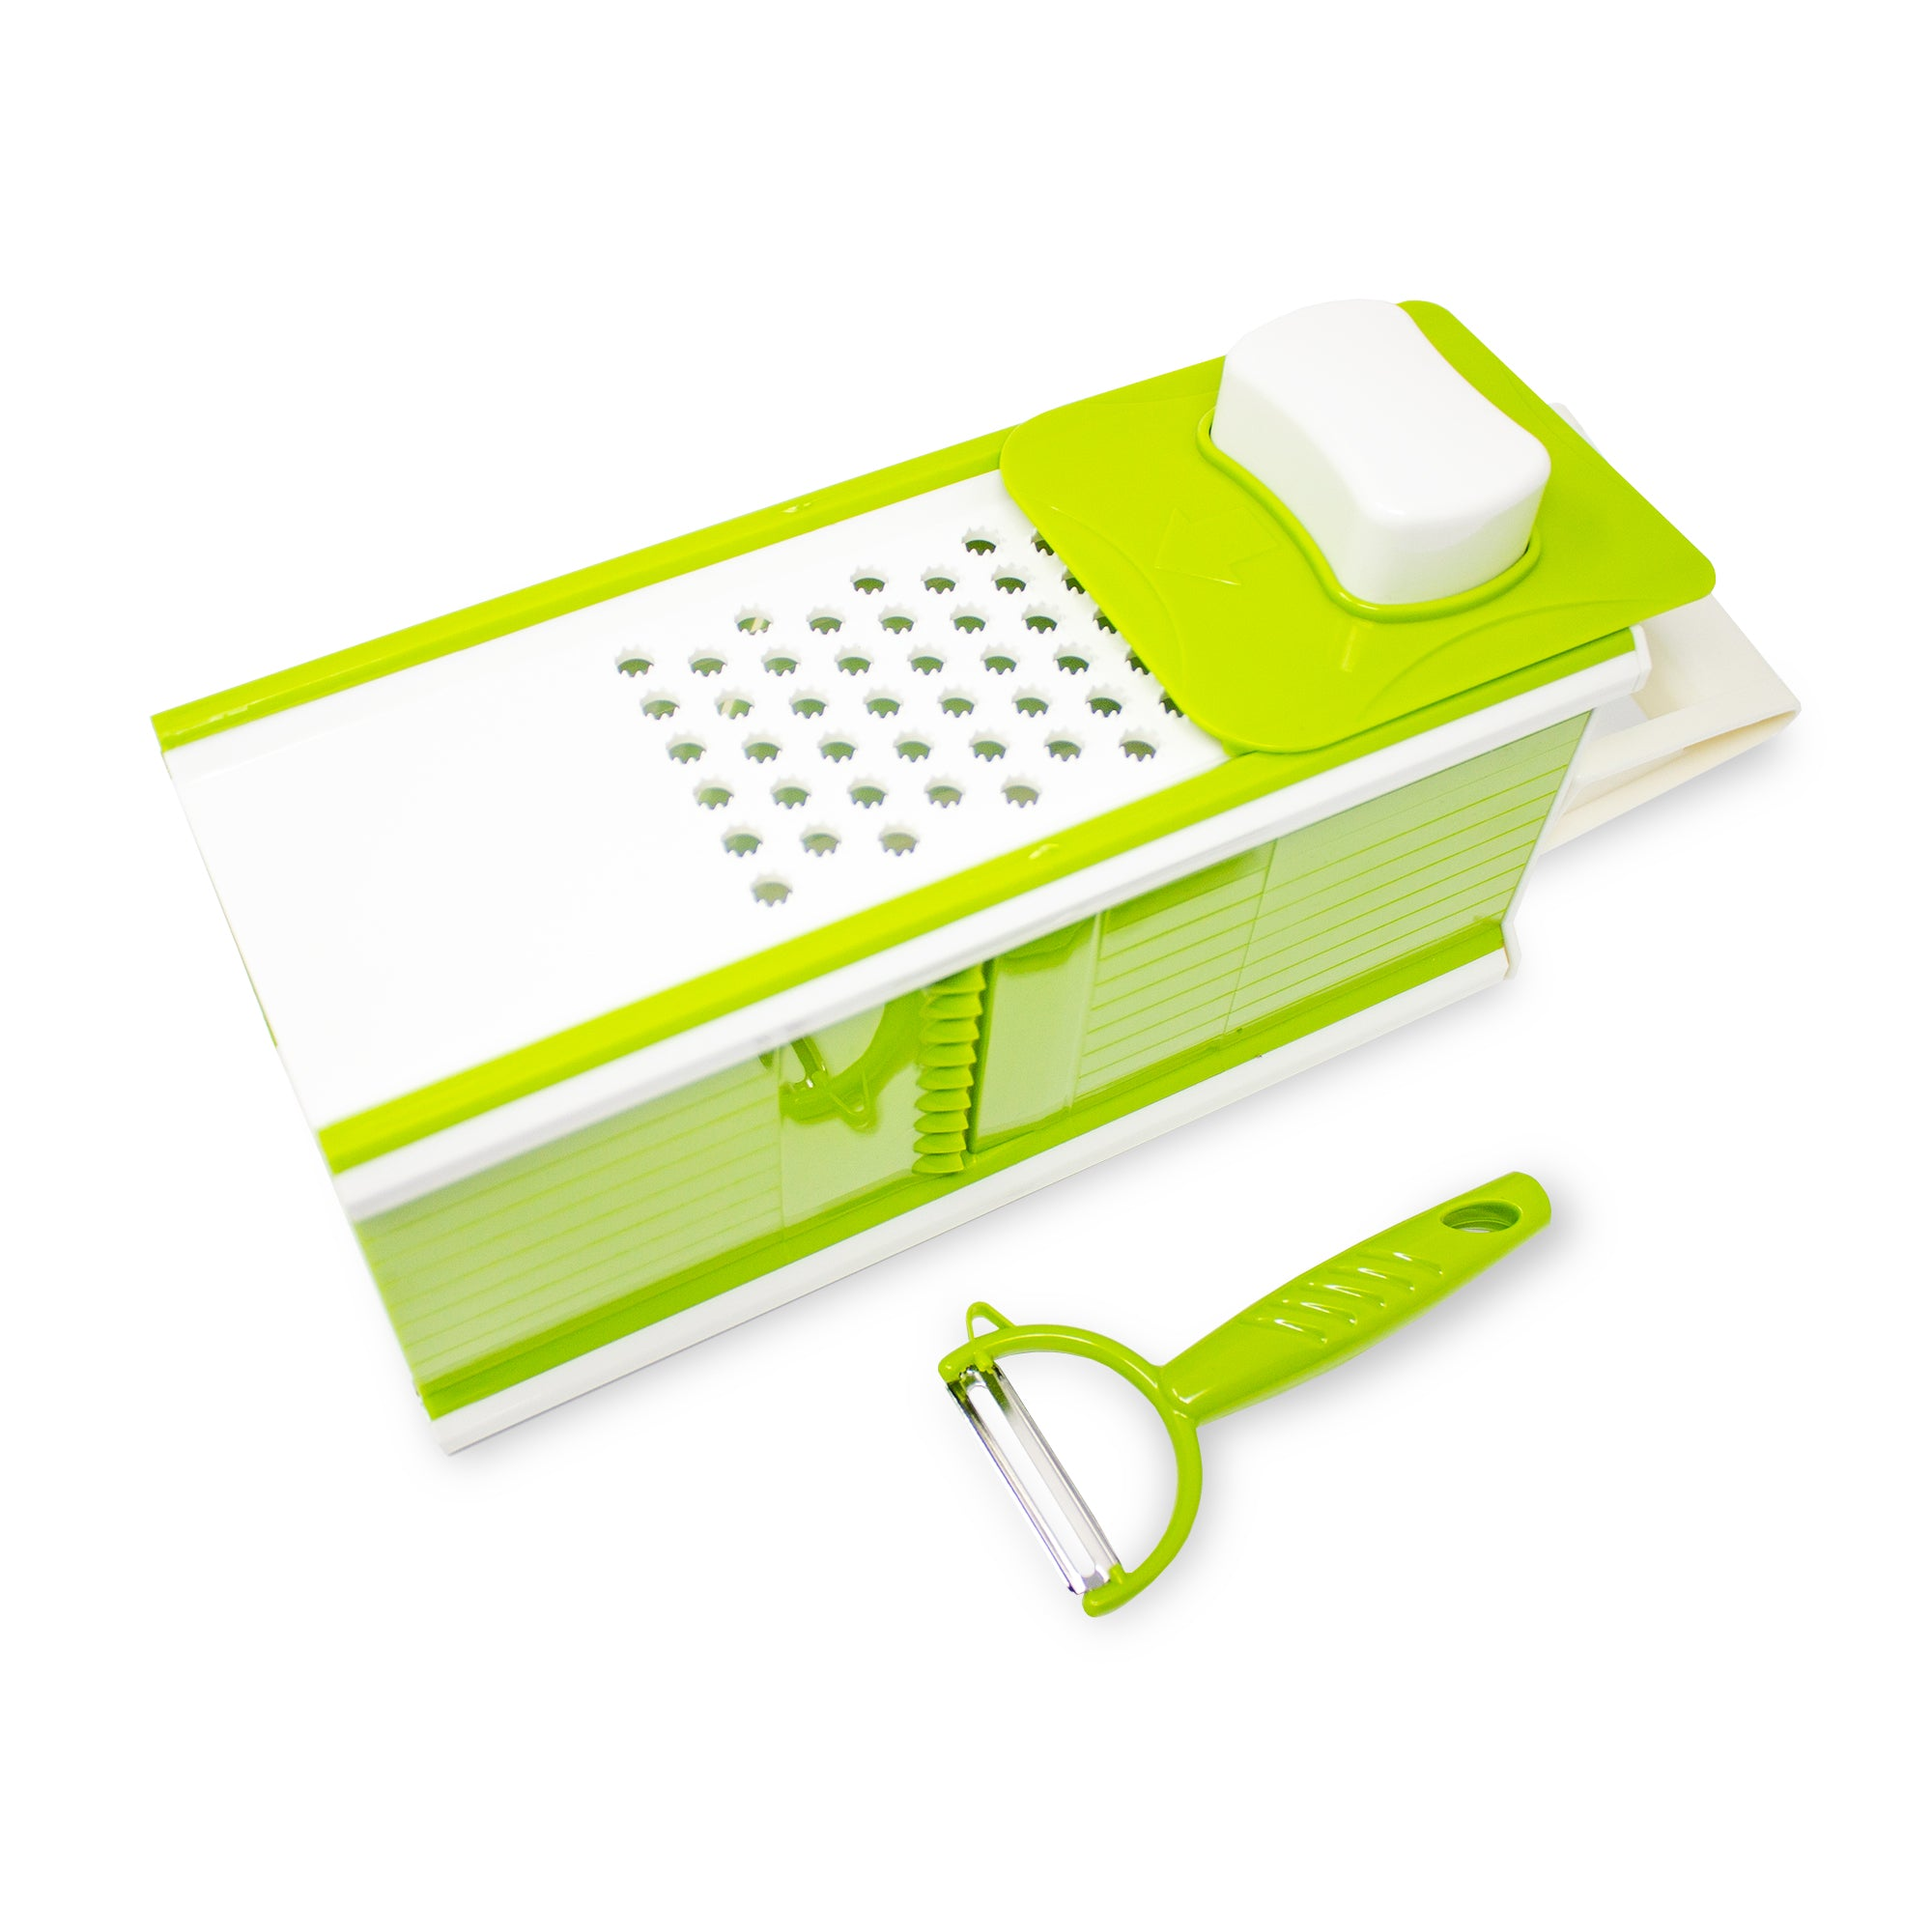 5 in 1 Vegetable Slicer and Grater